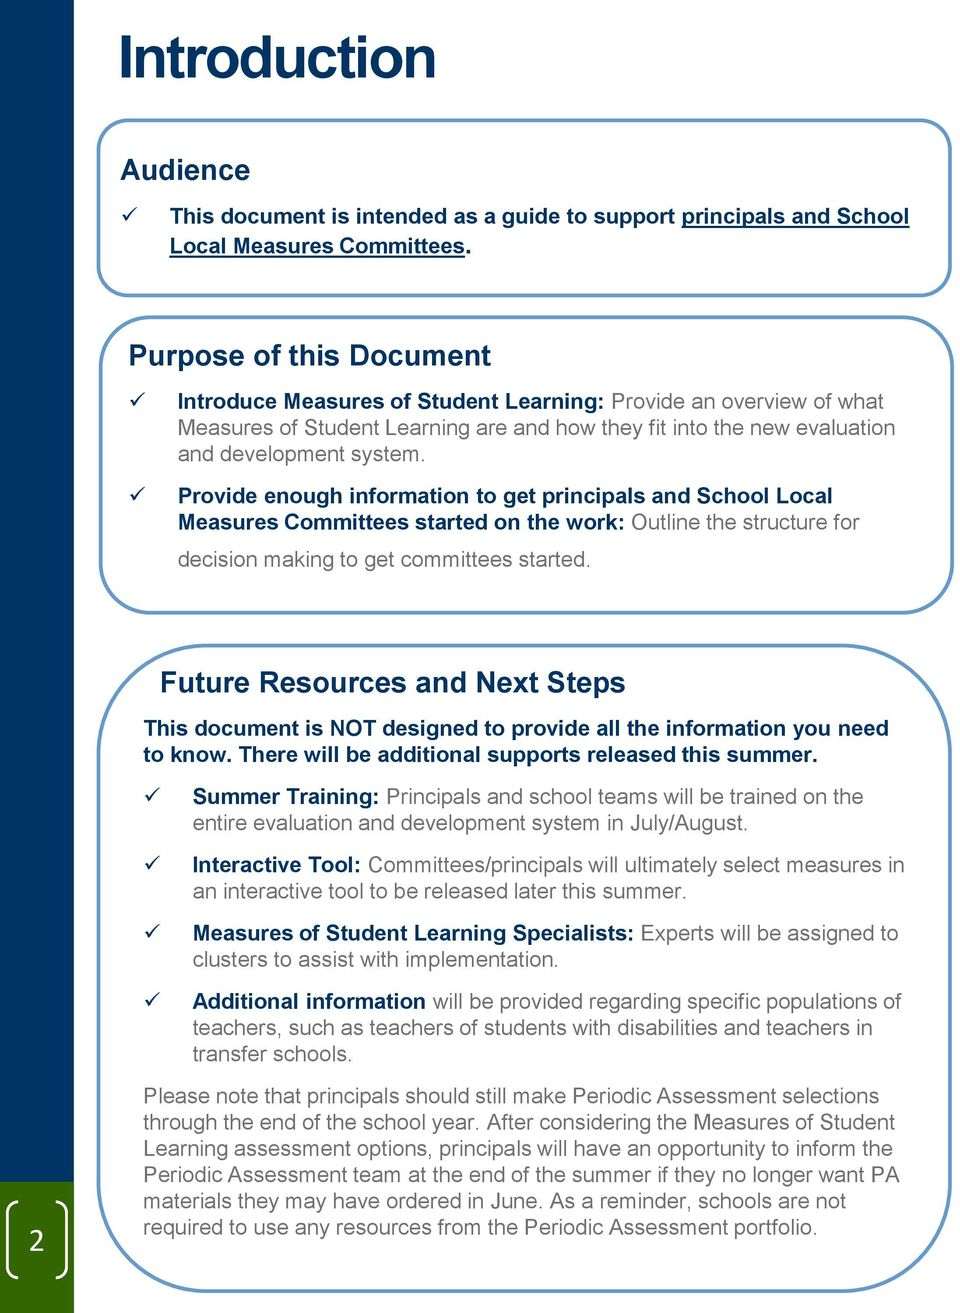 Provide enough information to get principals and School Local Measures Committees started on the work: Outline the structure for decision making to get committees started.